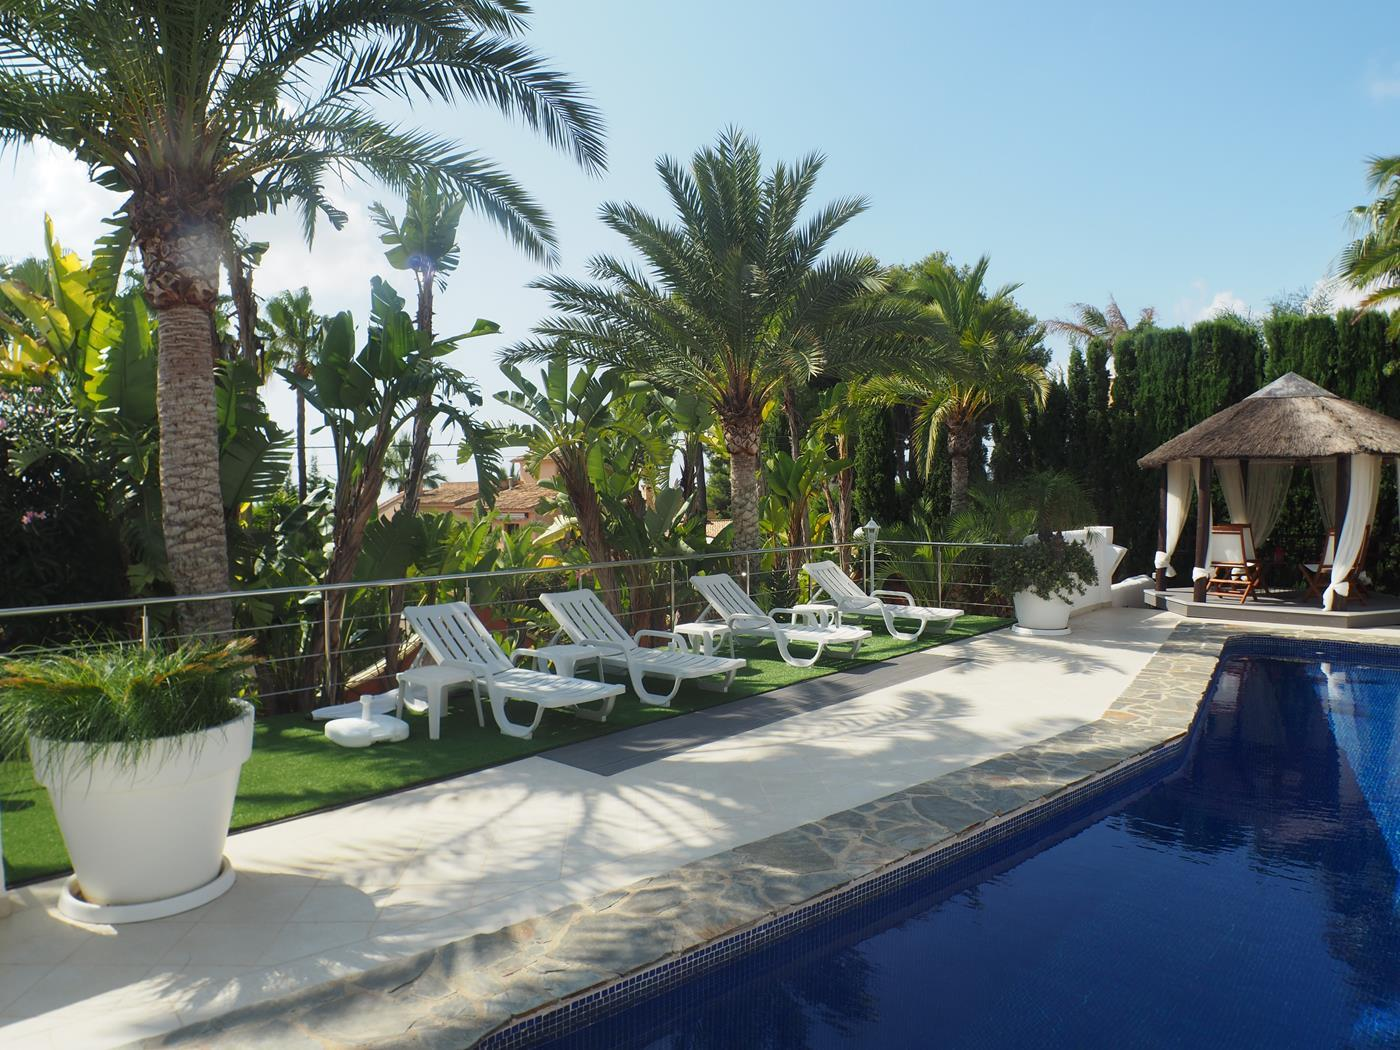 Fotogallerij - 3 - Exceptional homes in the Costa Blanca. Unparalleled Service. Exceptional properties in the Costa Blanca